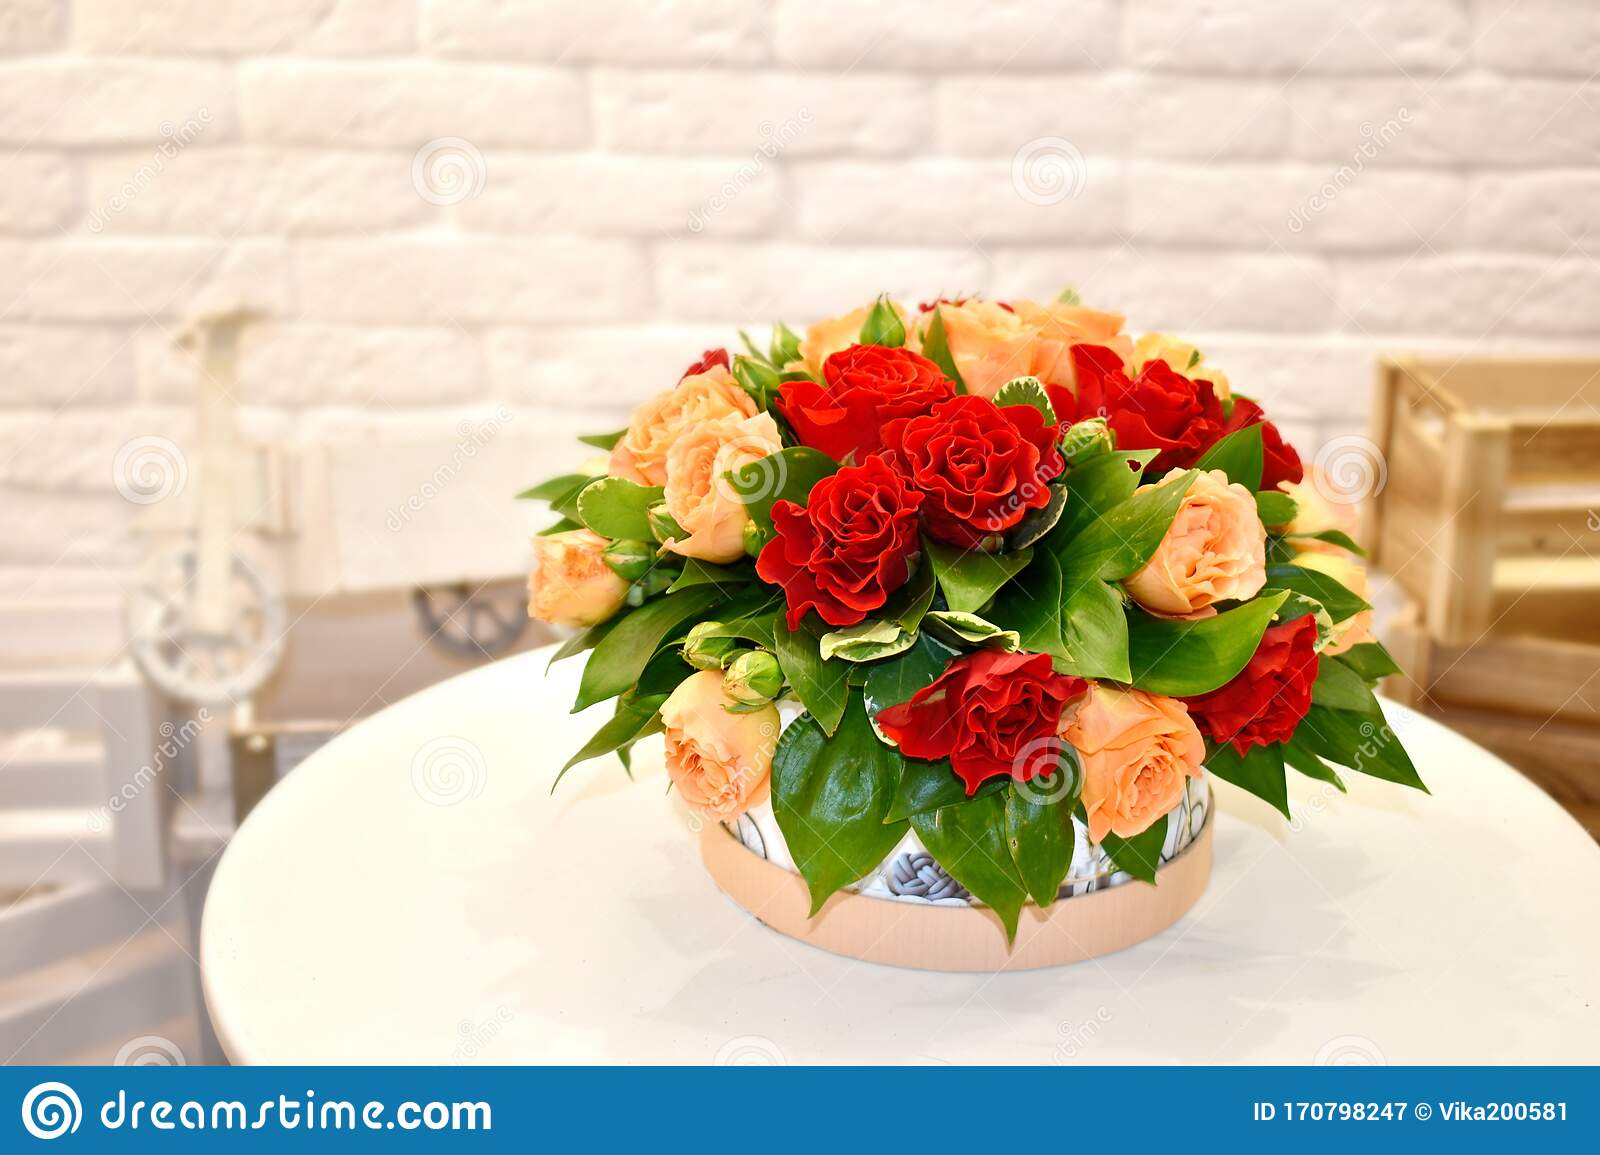 Sweet Flower Arrangement For Valentine S Day A Fragrant Bouquet Of Flowers On A White Table Stock Image Image Of Cashpo Decor 170798247